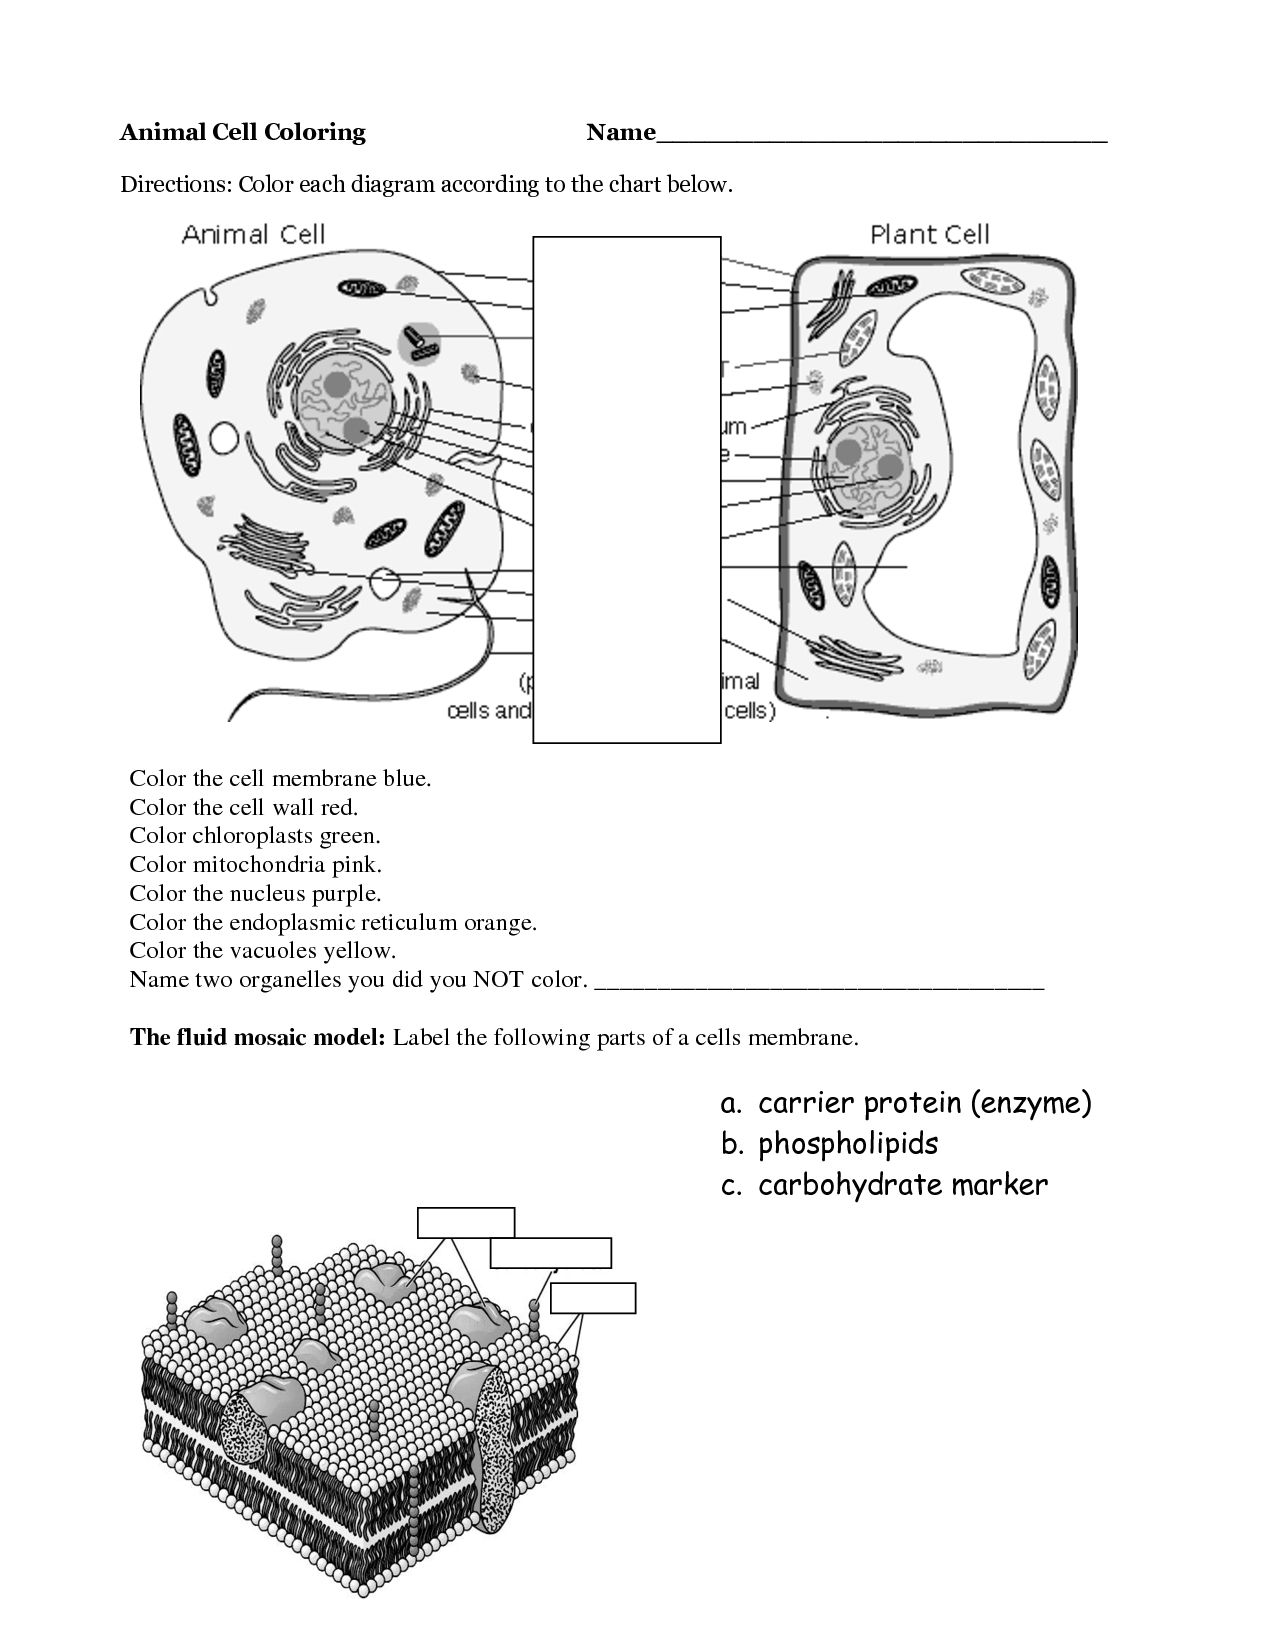 Worksheet Animal Cell Coloring Worksheet Worksheet Fun